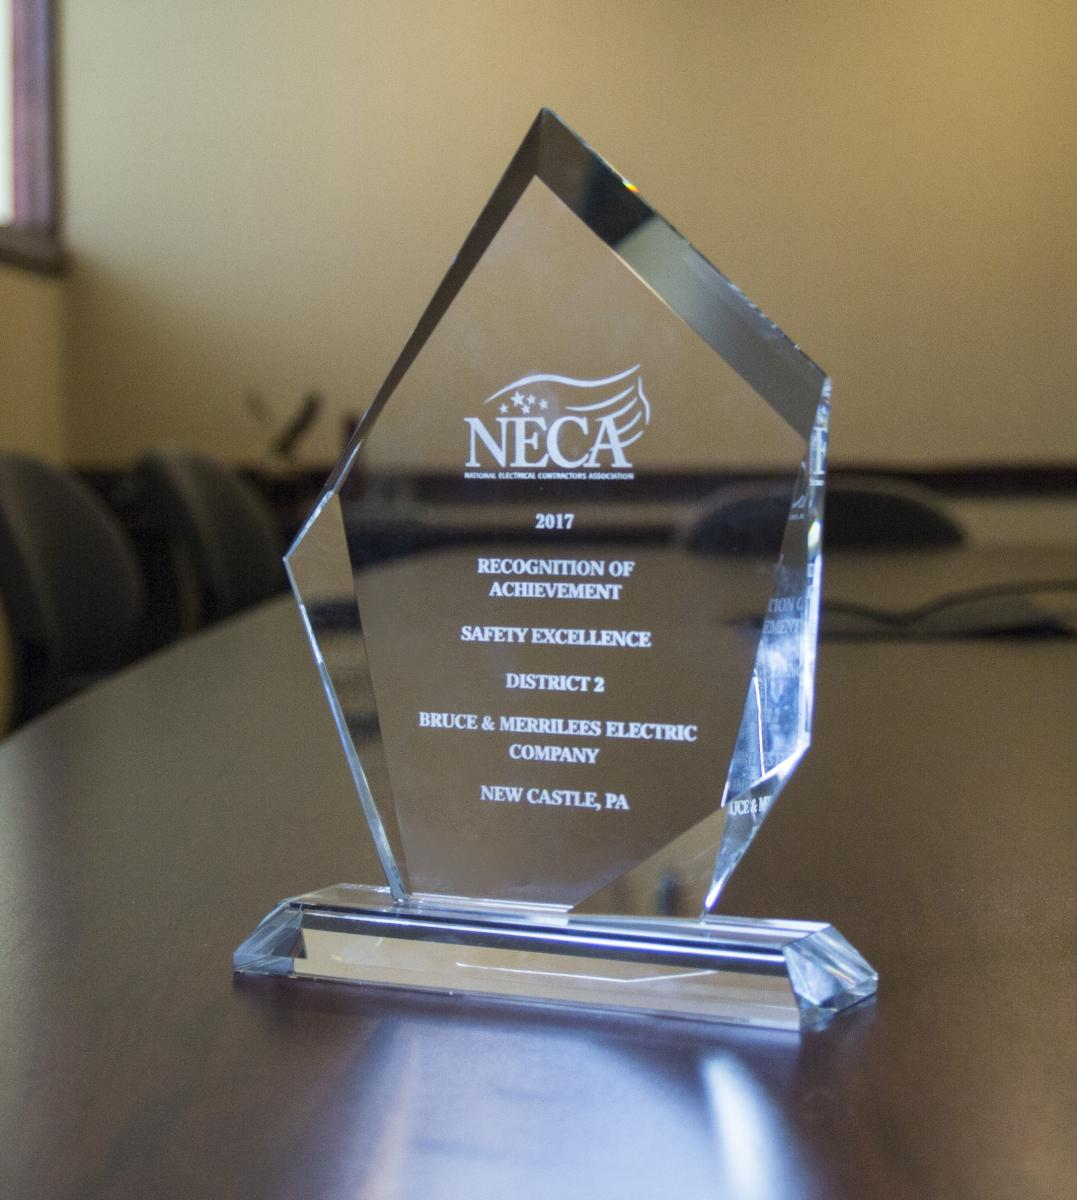 2017 NECA Safety Excellence Award, District 2